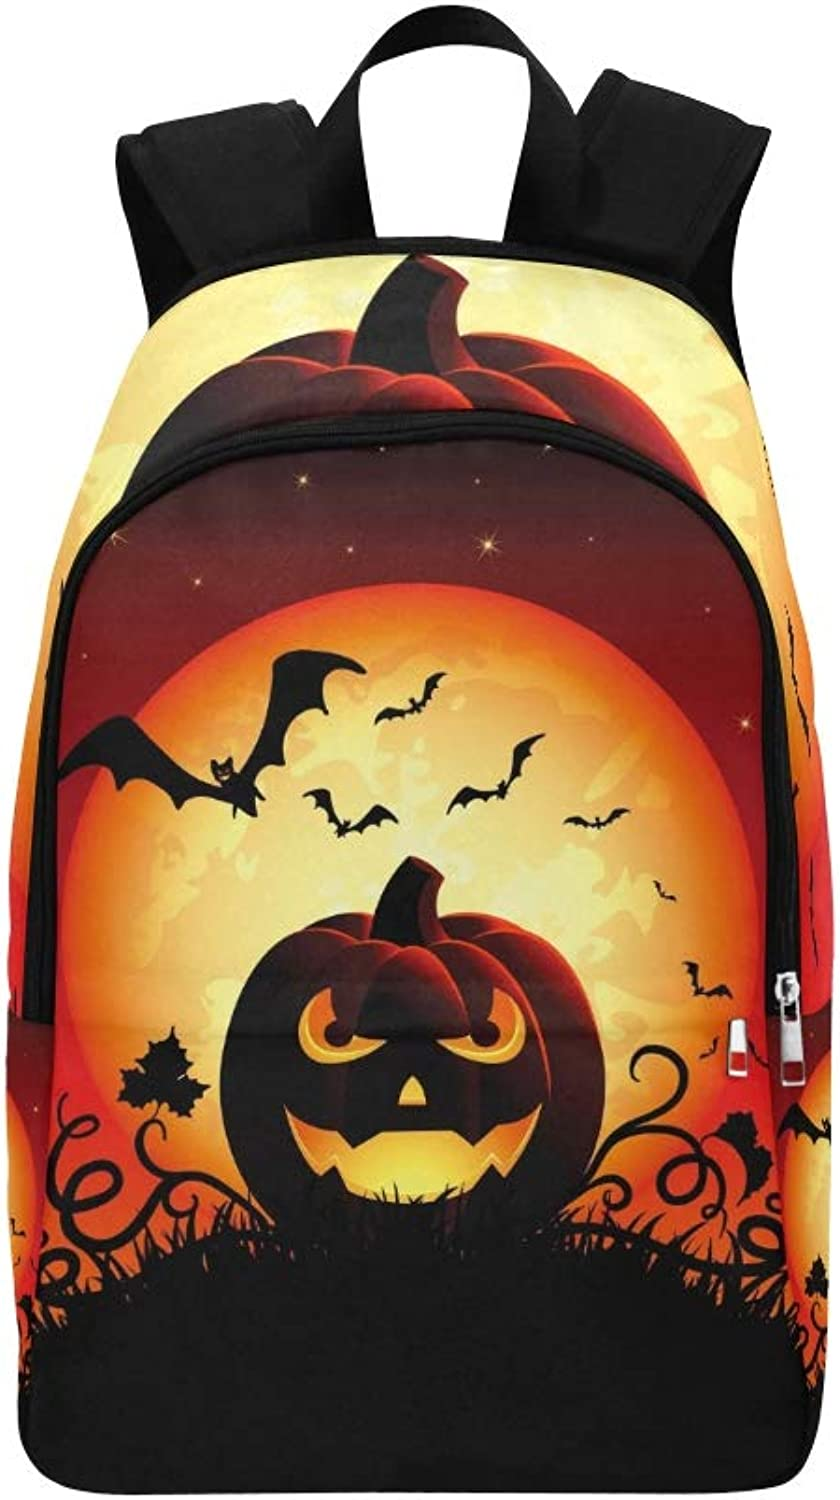 Halloween Night Jack O Lantern Casual Daypack Travel Bag College School Backpack for Mens and Women